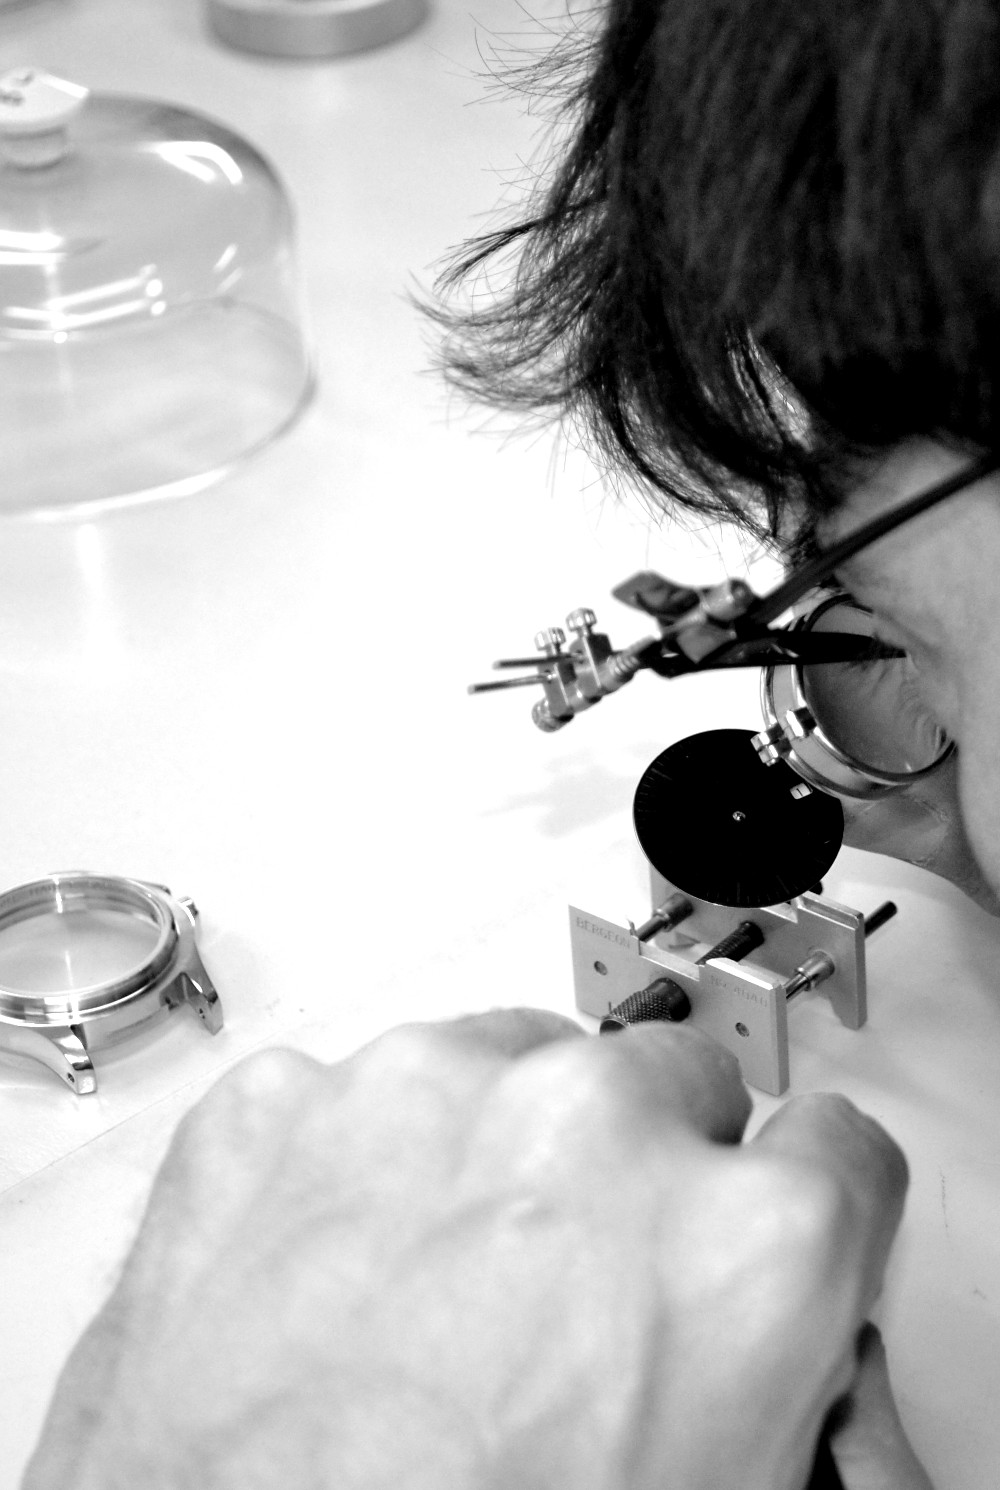 Building your watch: - Pictures show the looks of our watches, but not the thought that goes into their making. Every Harold Pinchbeck watch is assembled by hand in England. We embrace computer aided design, but we also treasure traditional craftsmanship, so our watches are a marriage of both, our approach is a world away from mass production.Your watch is made in a workshop (not a factory), by a skilled craftsman. This work can't be rushed: it's painstaking, requiring good eyesight and steady hands! When he has built up a watch he examines it from every angle before testing it thoroughly, adjusting it as necessary to ensure reliability and accuracy. Eventually, the case will receive its final polish and inspection, and at this stage the handmade strap is fitted. Only then is the watch ready to be placed in its presentation box, ready to be sent to its owner, together with the five year warranty.